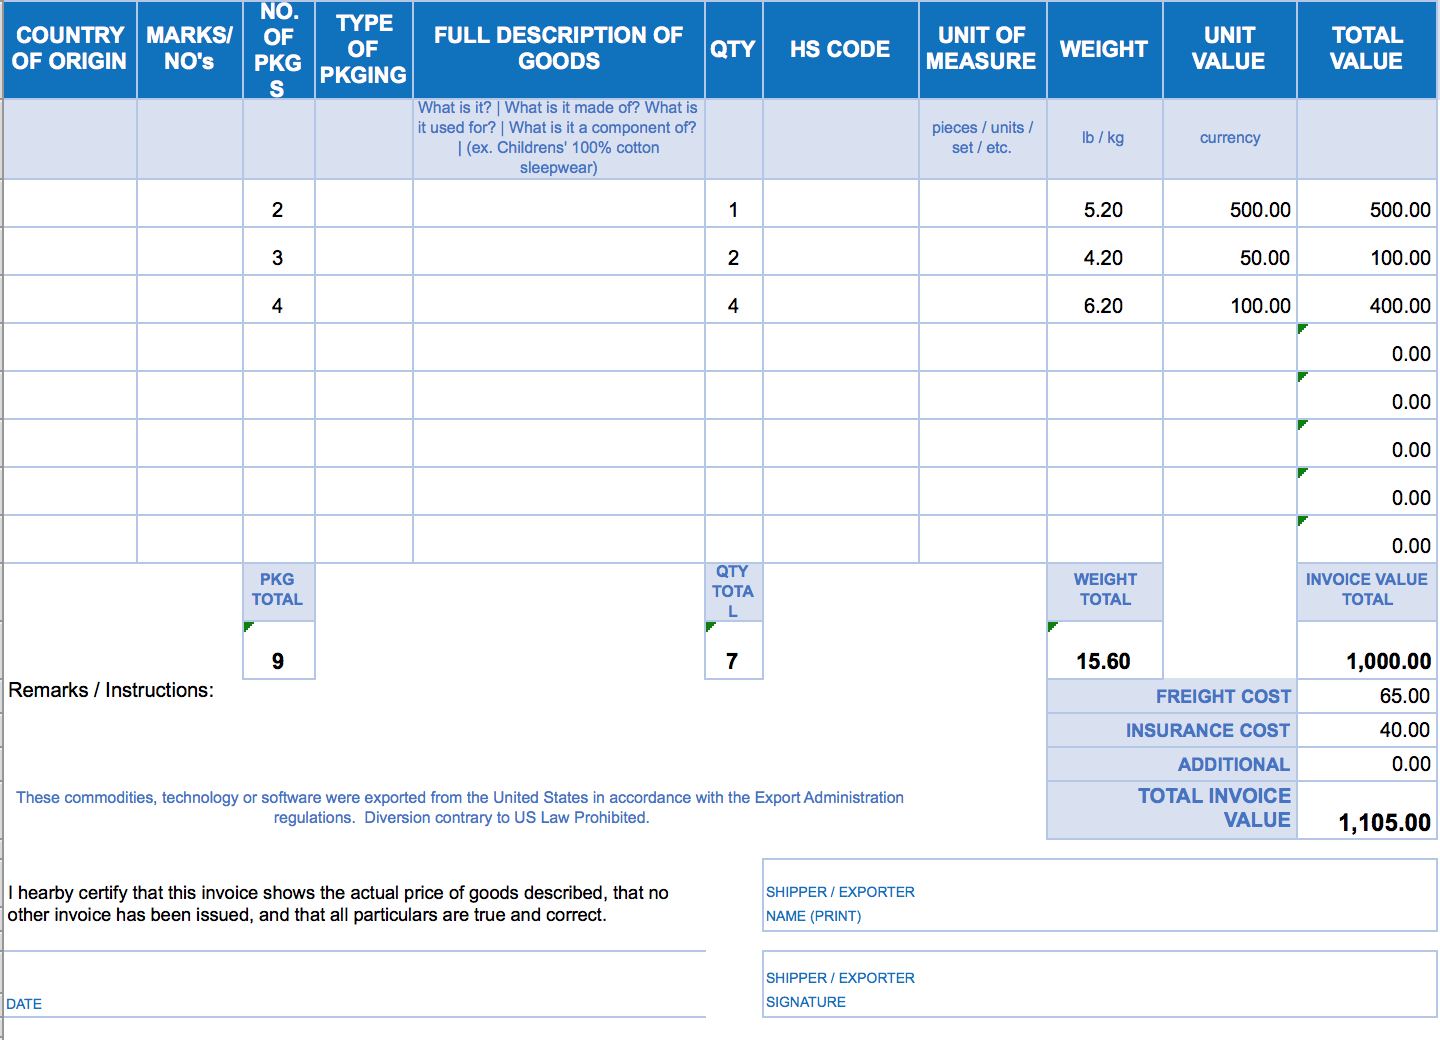 Free Excel Invoice Templates - Smartsheet Intended For Invoice Spreadsheet